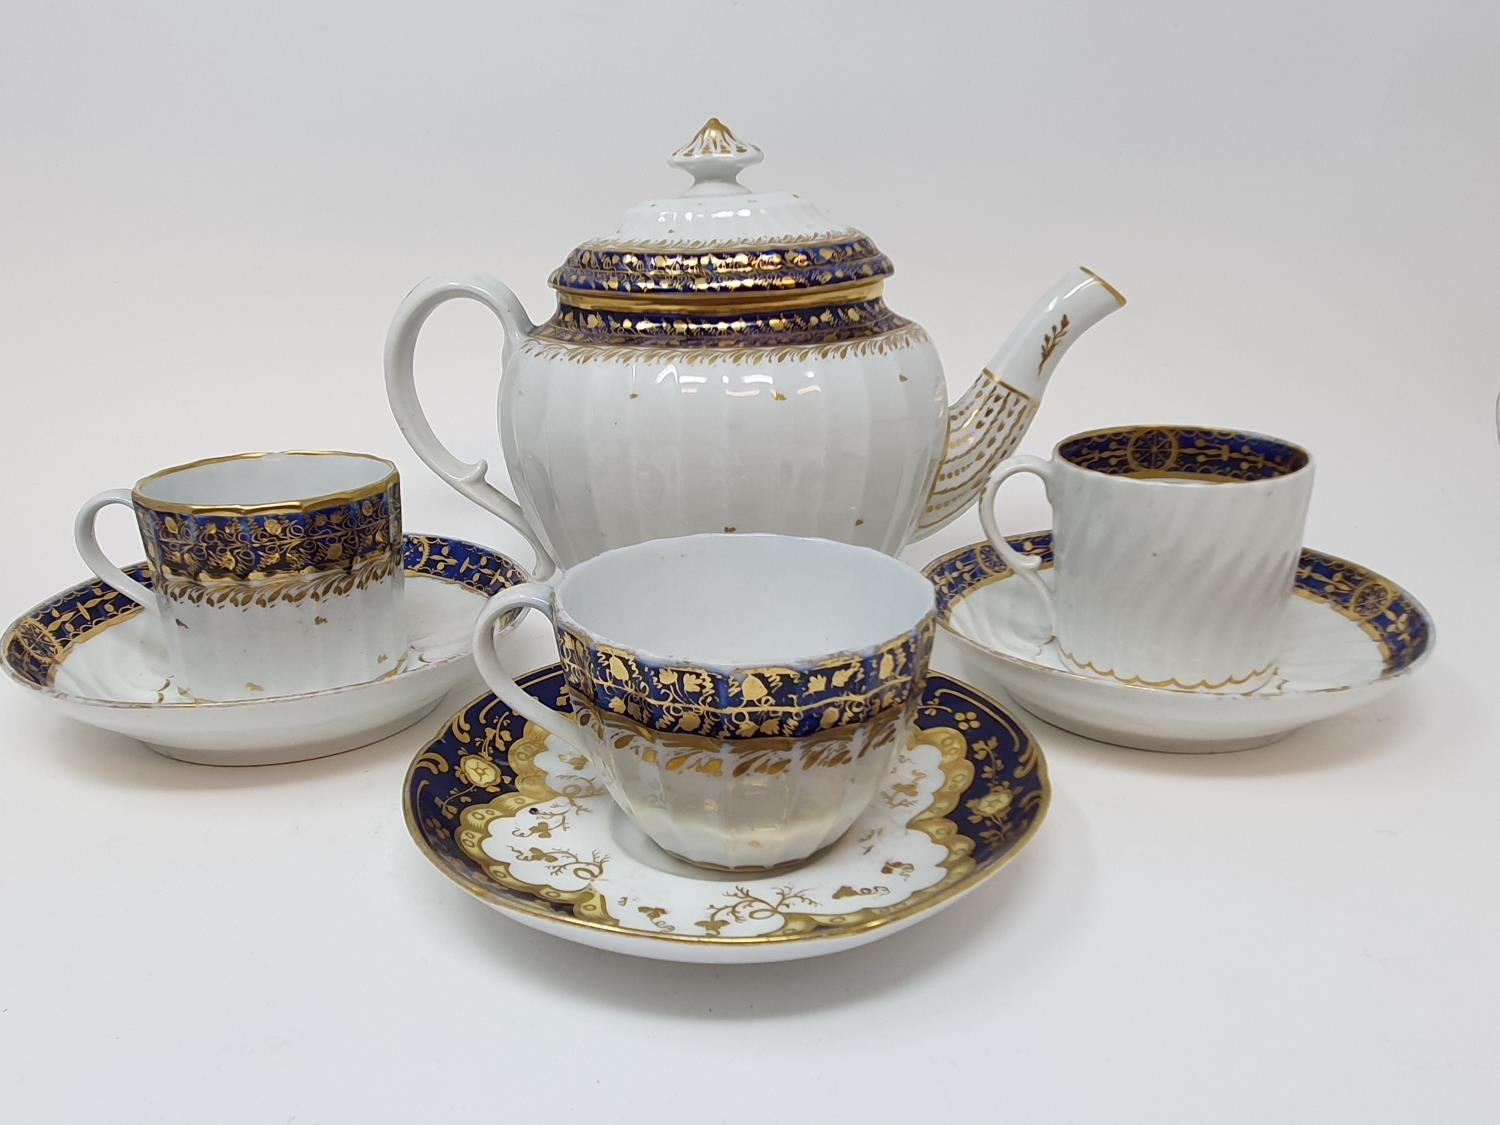 A late 18th century Worcester porcelain tea set, comprising a tea pot, two cups and saucers, five